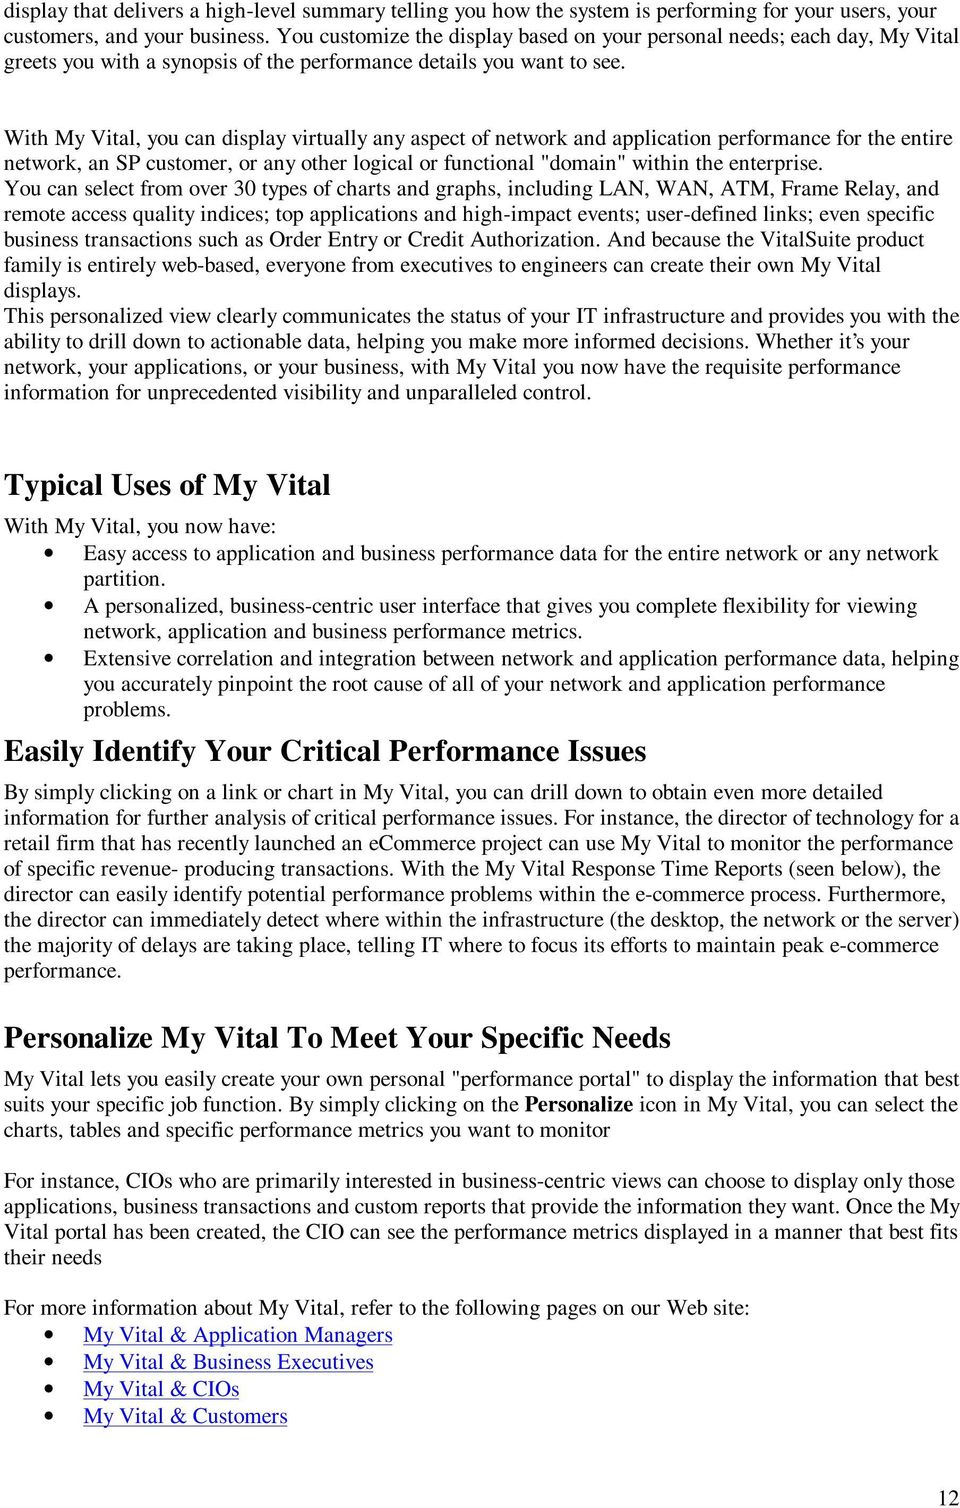 Customer Tool Kit Recommendations From Choice One Communications Pdf Next Diagram2 You Will See A Daily Graph That Allows To Monitor With My Vital Can Display Virtually Any Aspect Of Network And Application Performance For